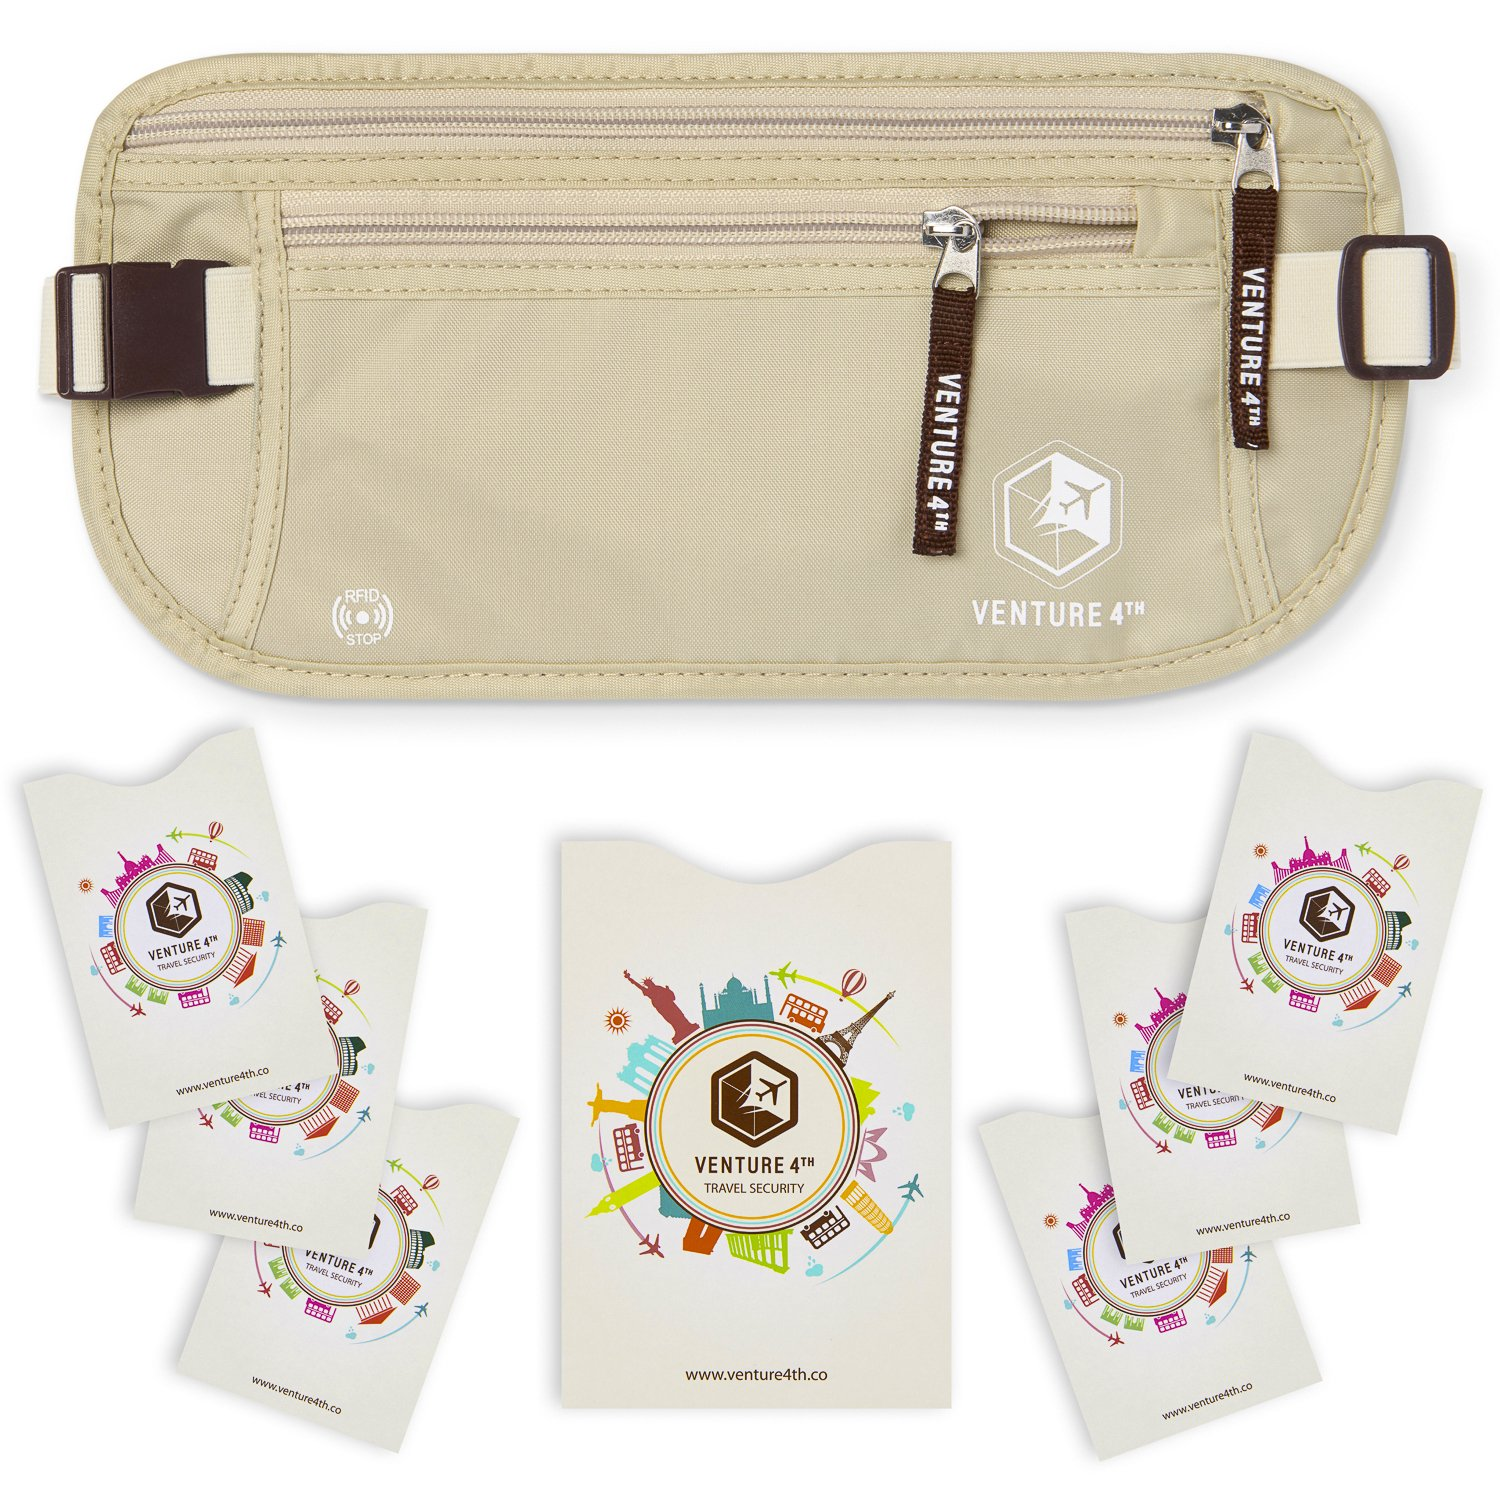 VENTURE 4TH RFID Money Belt for Travel: The Trusted Hidden Waist Stash for Men and Women (Beige + RFID Sleeves) by VENTURE 4TH